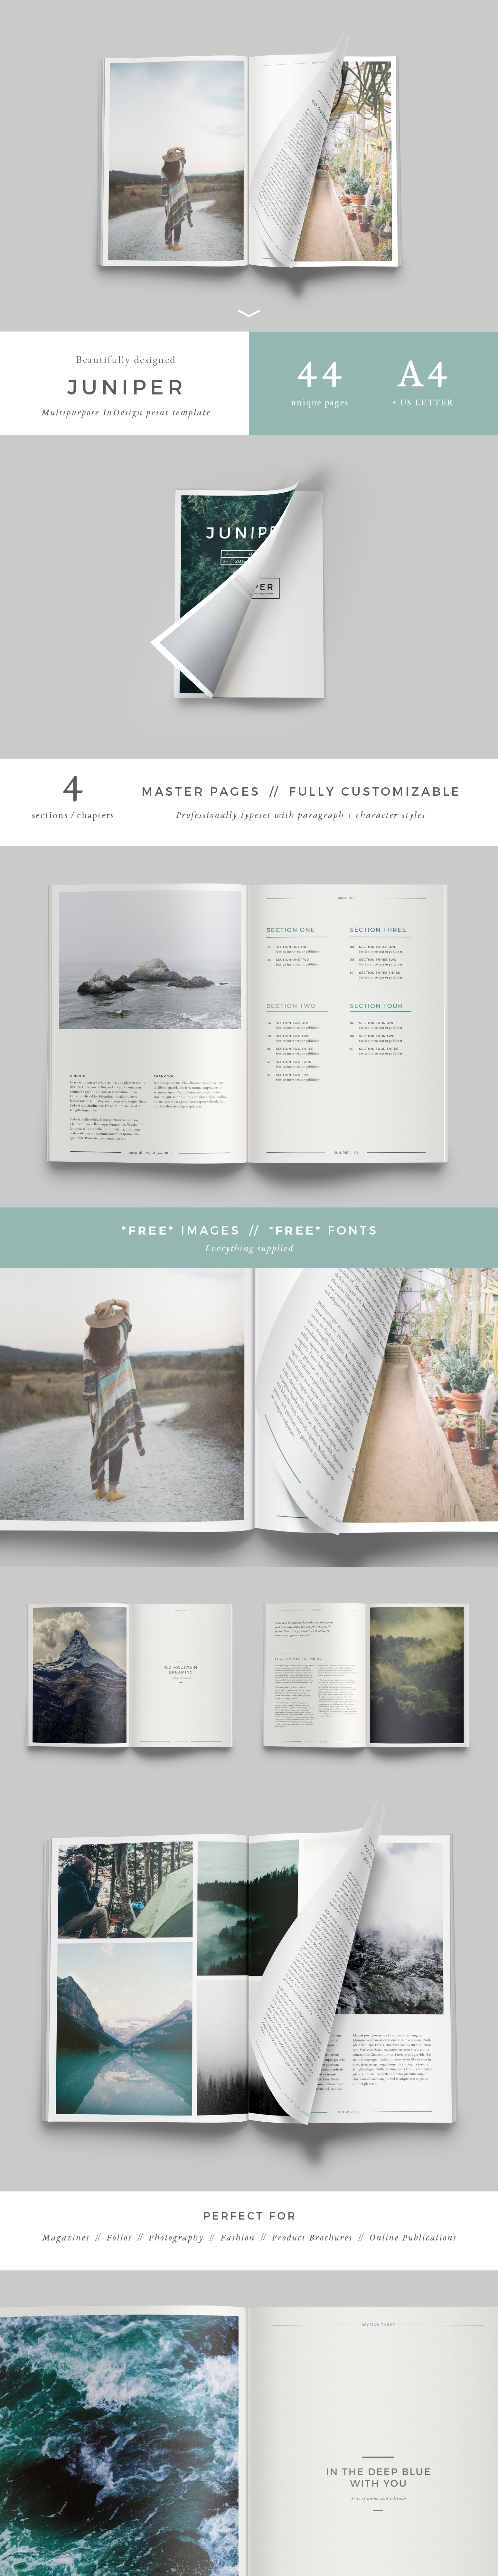 Juniper Magazine Layout Template: Clean, modern and fully customizable. Check it out and get some inspiration!